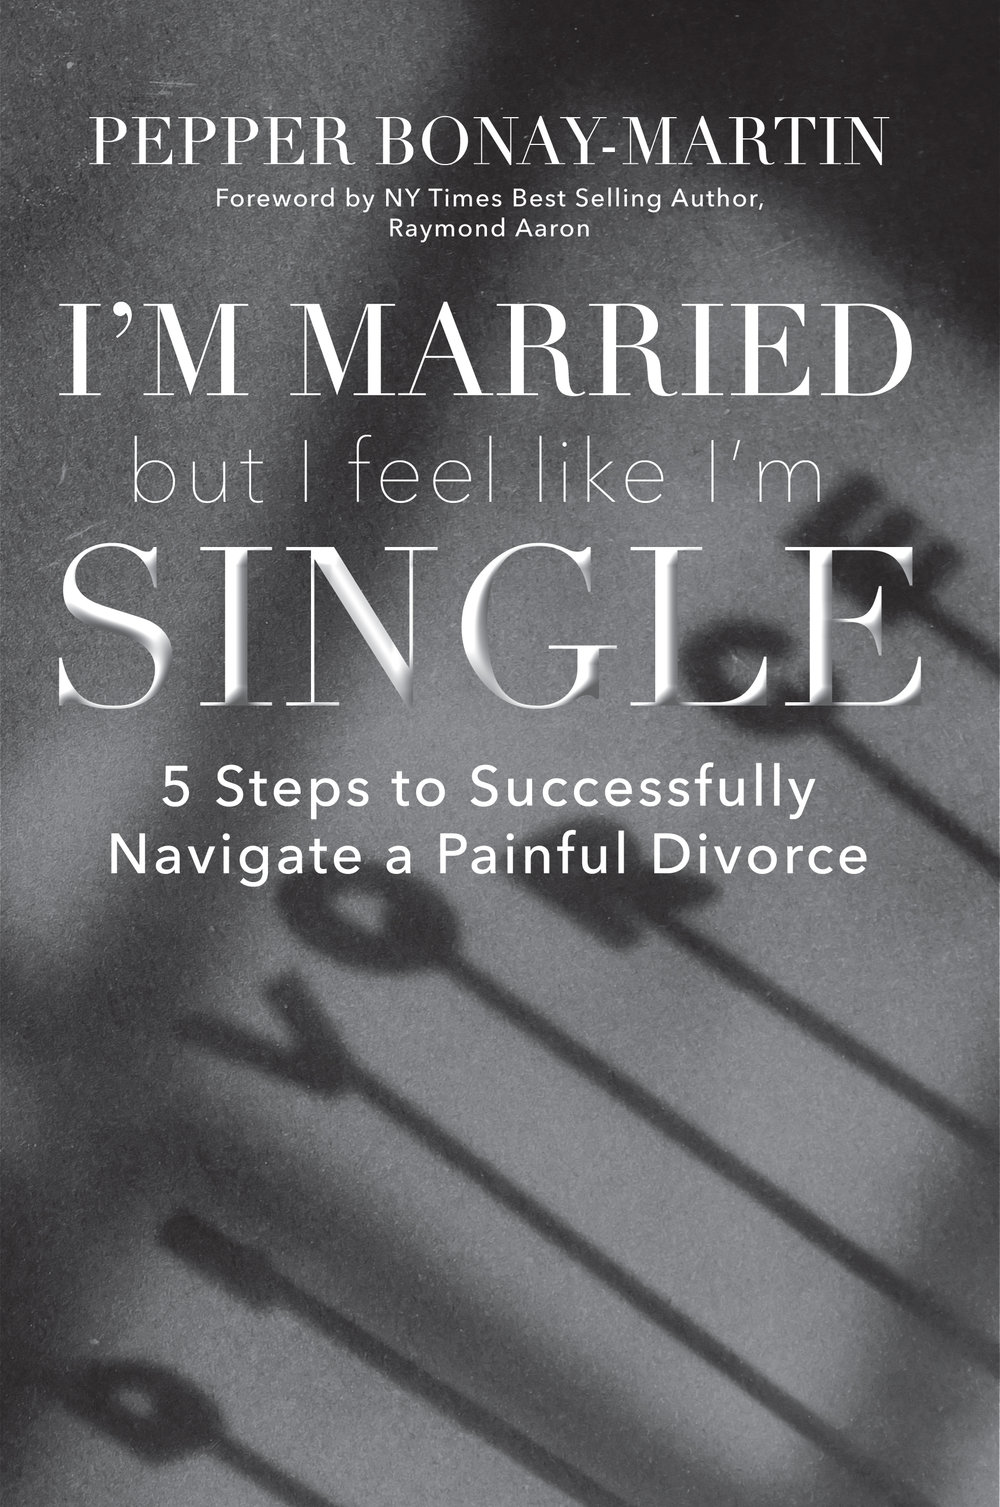 I'm Married But I Feel Like I'm Single - I'm Married but I Feel Like I'm Single is riveting story describing how a once firmly grounded Christian couple's deep desire to love was simply not enough to fight off the deception and intense loneliness that infiltrated their marriage. This left their relationship vulnerable to an array of pitfalls - including infidelity - which eventually led to its painful and public demise, including a 10-year separation and finally, a painful divorce.Regardless of where you are on the relationship spectrum, this book will offer sound advice to you as you read about the author's emotional journey from bliss to the abyss, which ends with a divine demonstration of God's ability to repair and restore broken hearts and broken lives. You will cry, laugh, feel intense anger and then a burst a restored hope. It is an excellent read, both inspirational and entertaining.